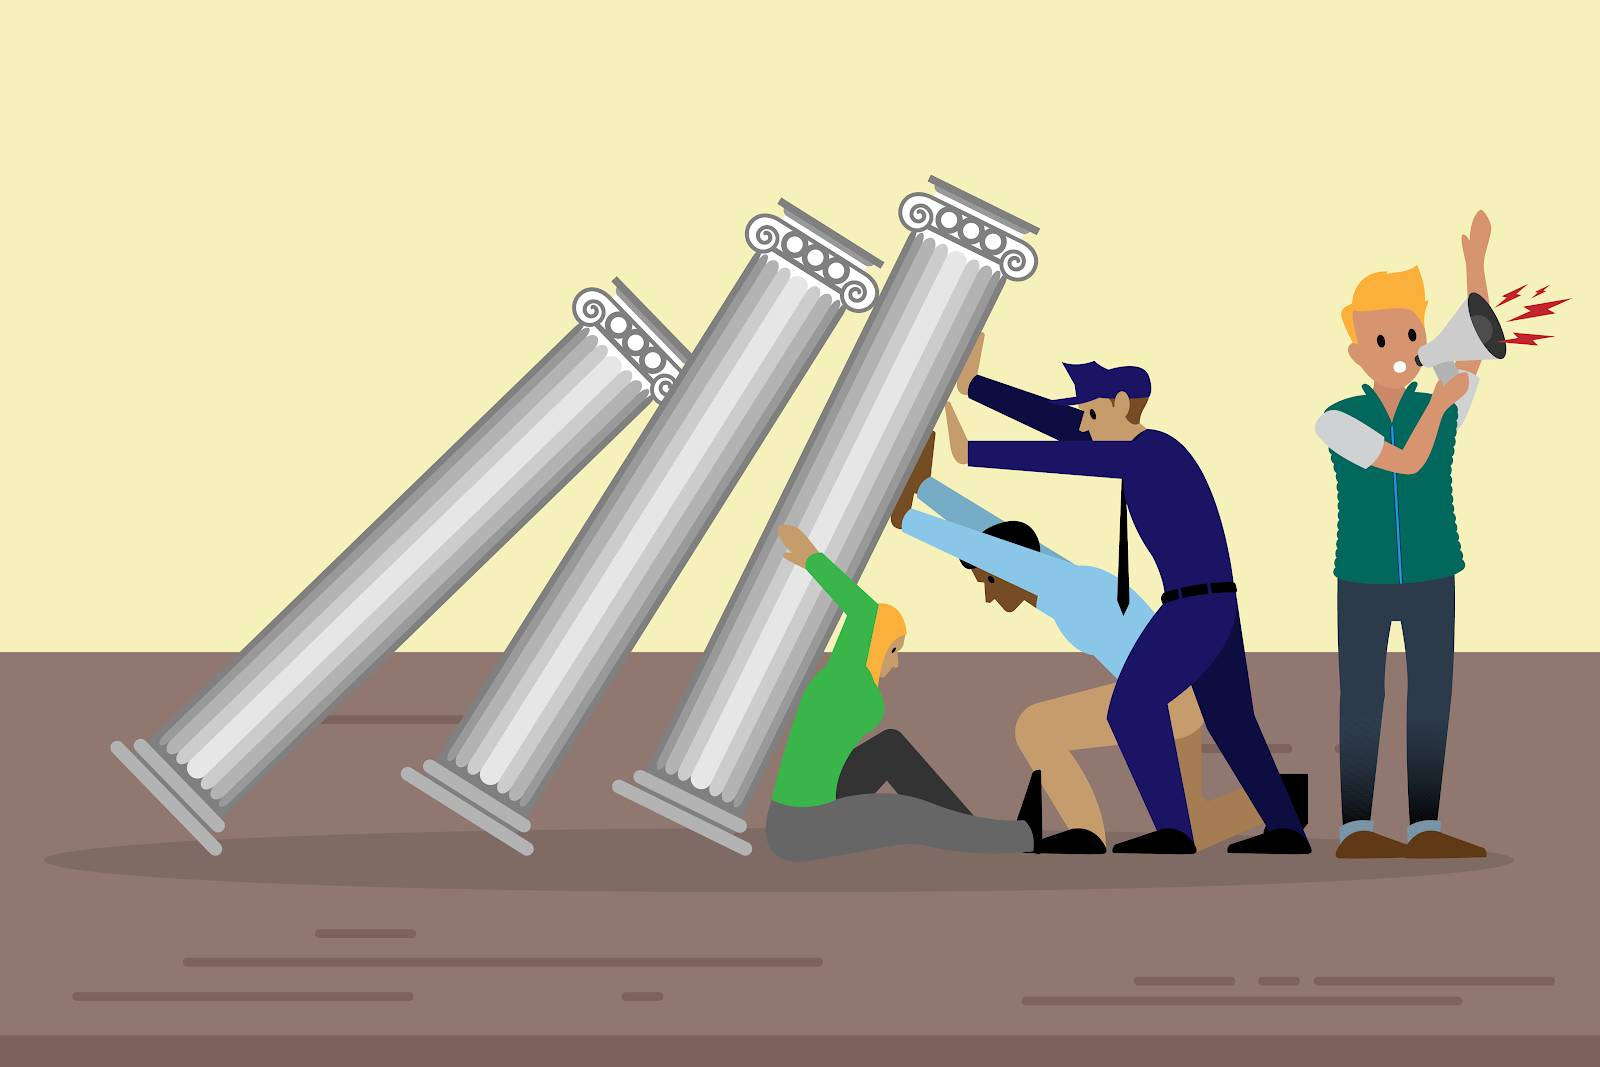 Image of a team of people from different roles in different organizations trying to hold up pillars that are falling over.